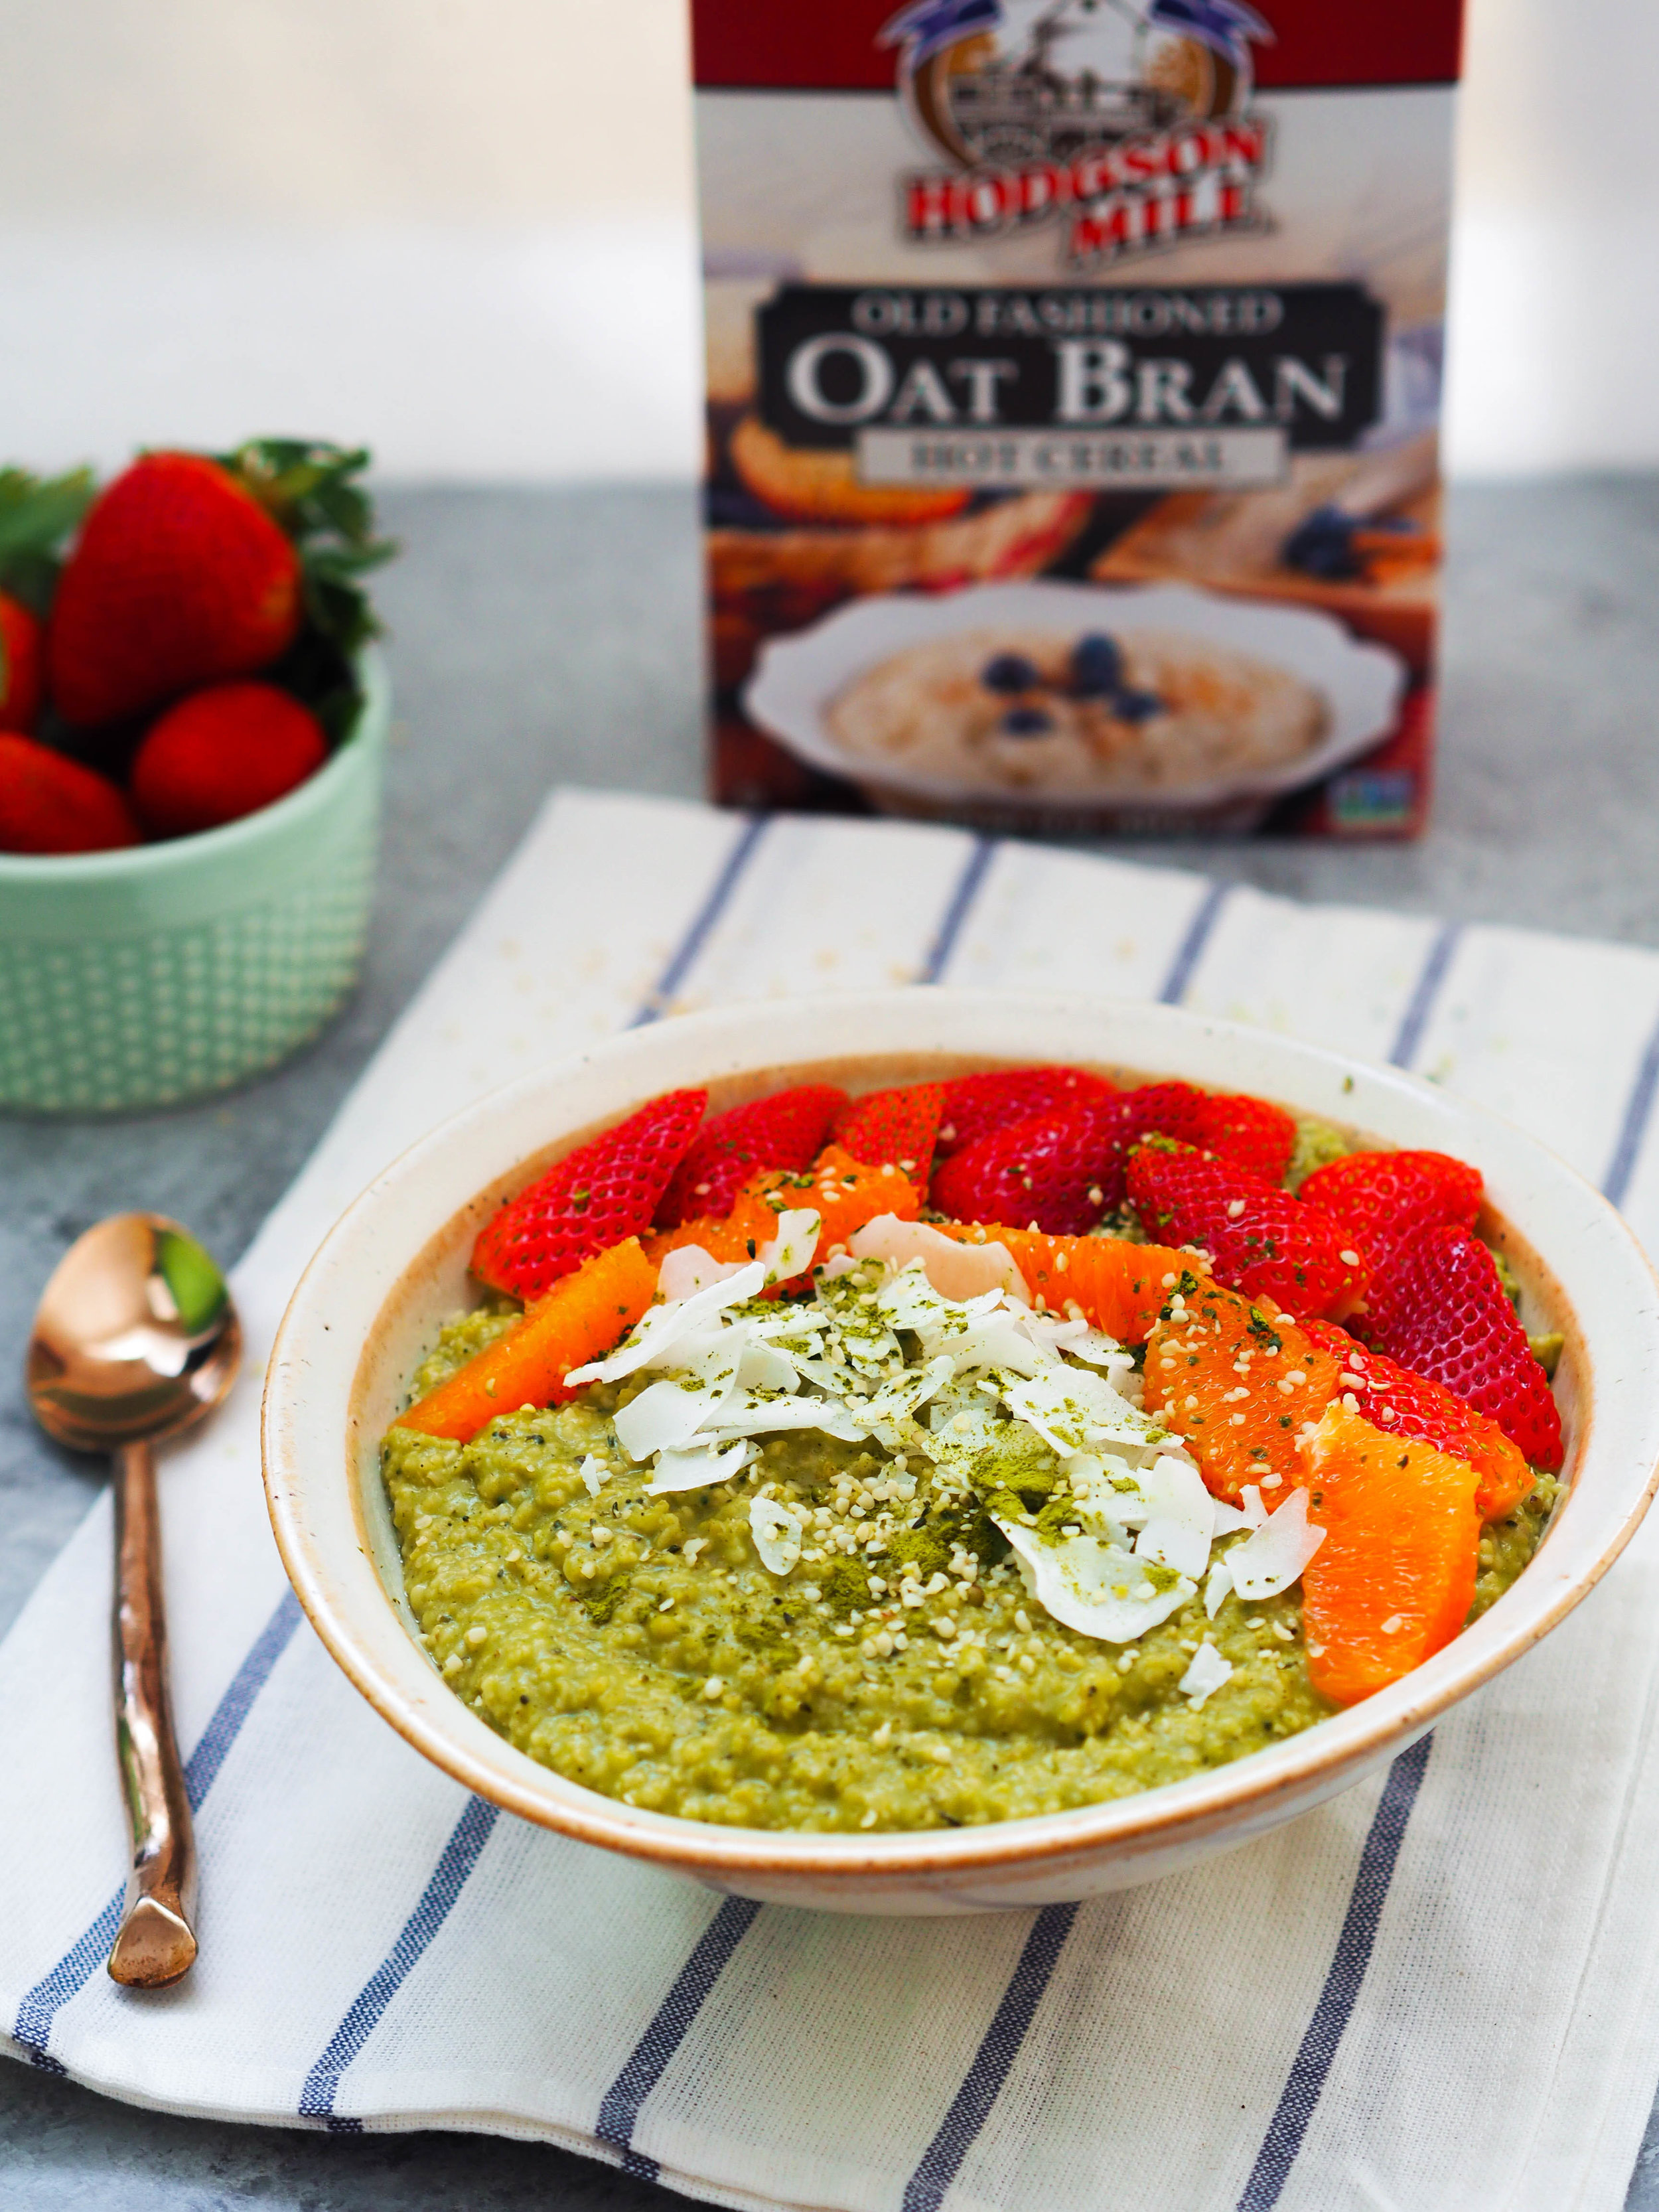 This matcha coconut toasted oat bran bowl is packed with filling fiber for a breakfast that sticks! #oatmeal #vegan #matcha #healthyrecipe #breakfast #glutenfree